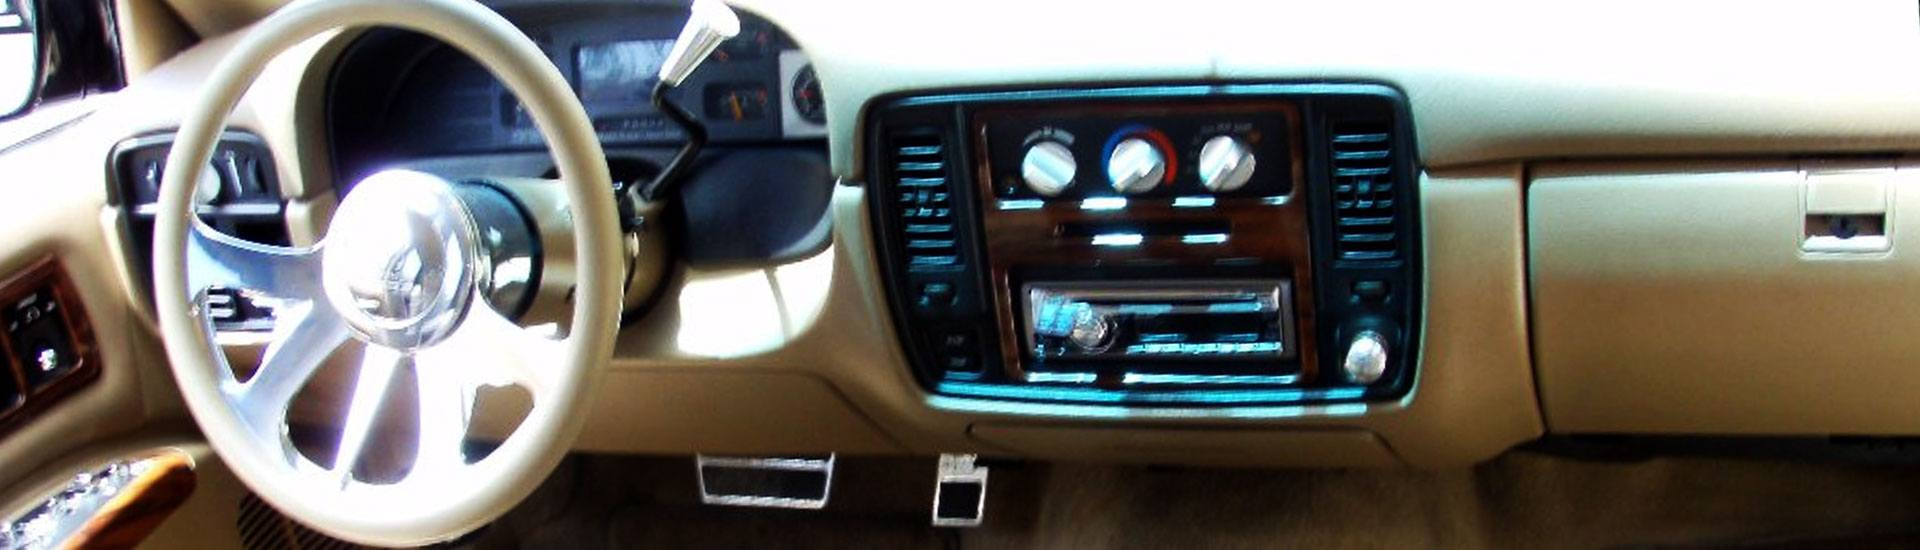 1994 Chevrolet Caprice Dash Kits